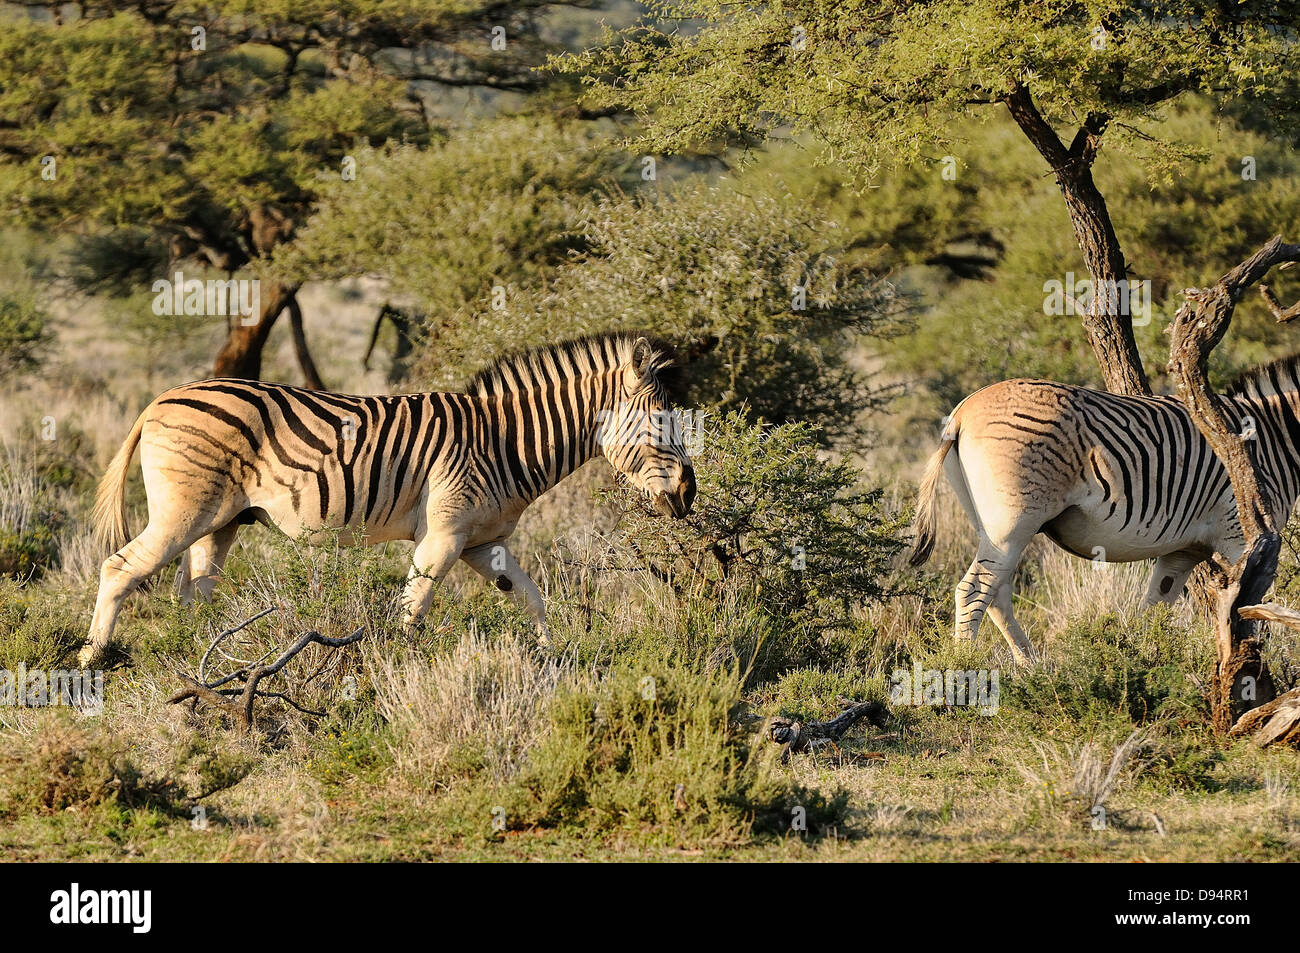 quagga project The quagga (equus quagga quagga) is an extinct subspecies of the plains zebra that lived in south africa quagga project edit when the relationship between plains zebras and the quagga was determined, the quagga project was formed in 1987 by reinhold rau.